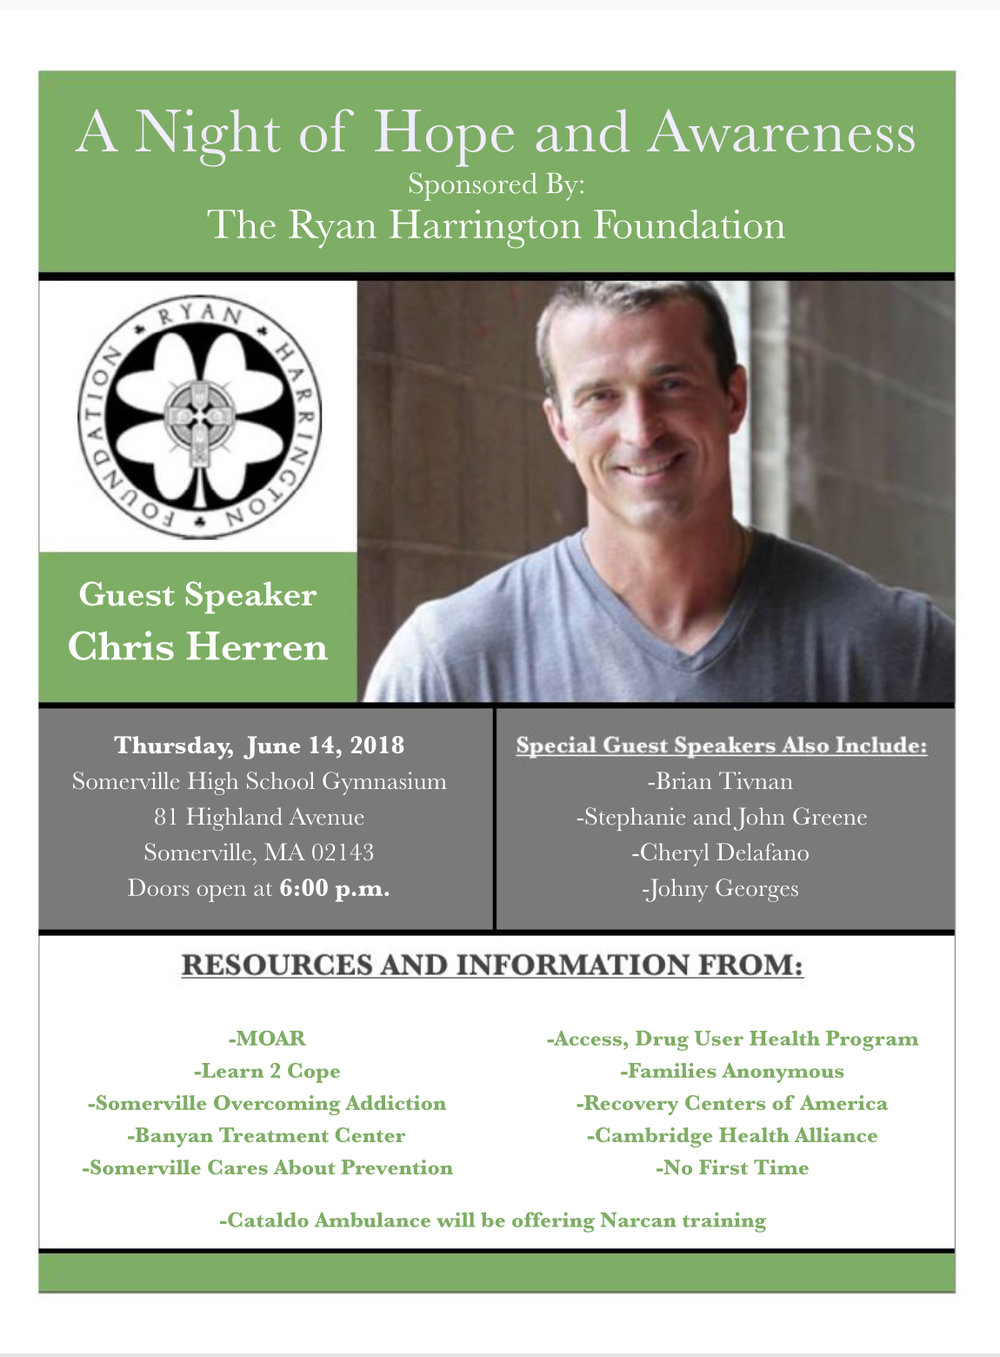 Night of Hope and Awareness Flyer.jpg